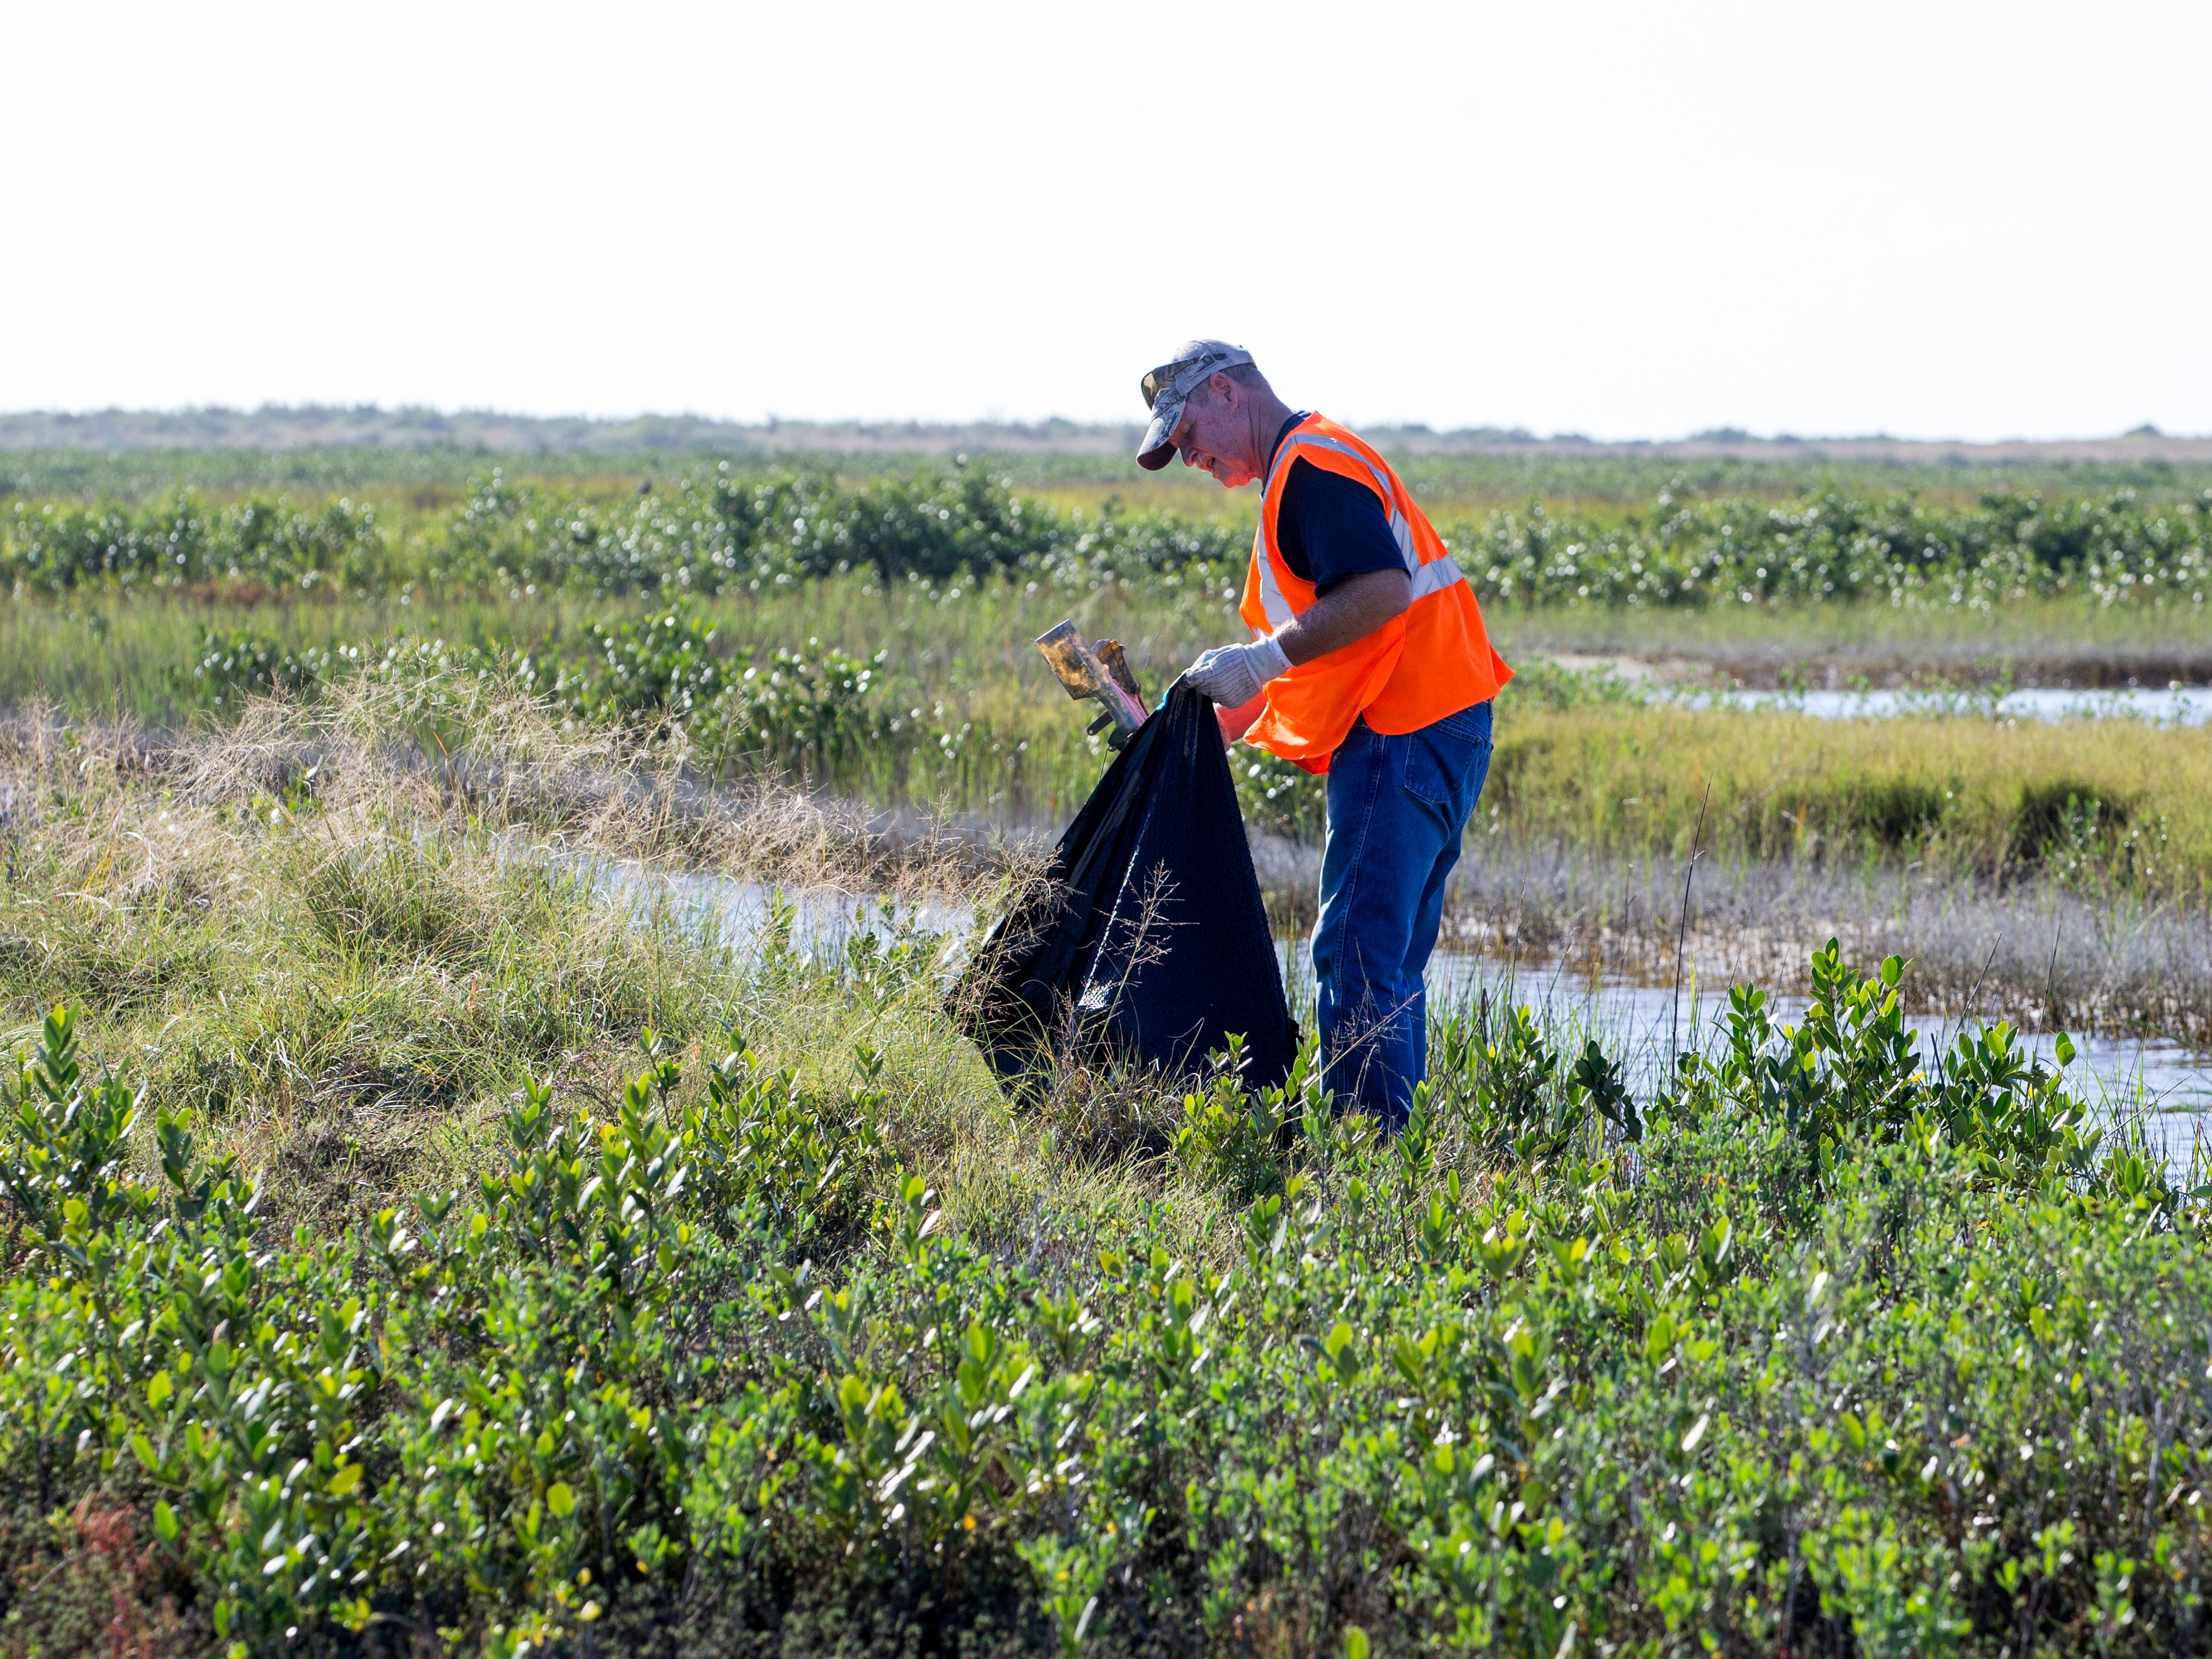 Bob Schantz cleans up Cove Harbor Wetlands Sanctuary in Aransas County on Tuesday, October 30, 2018 during a cleanup organized by Keep Aransas County Beautiful.Volunteers were working to clean debris from the wetlands and harbor that was scattered by Hurricane Harvey over 14 months ago.